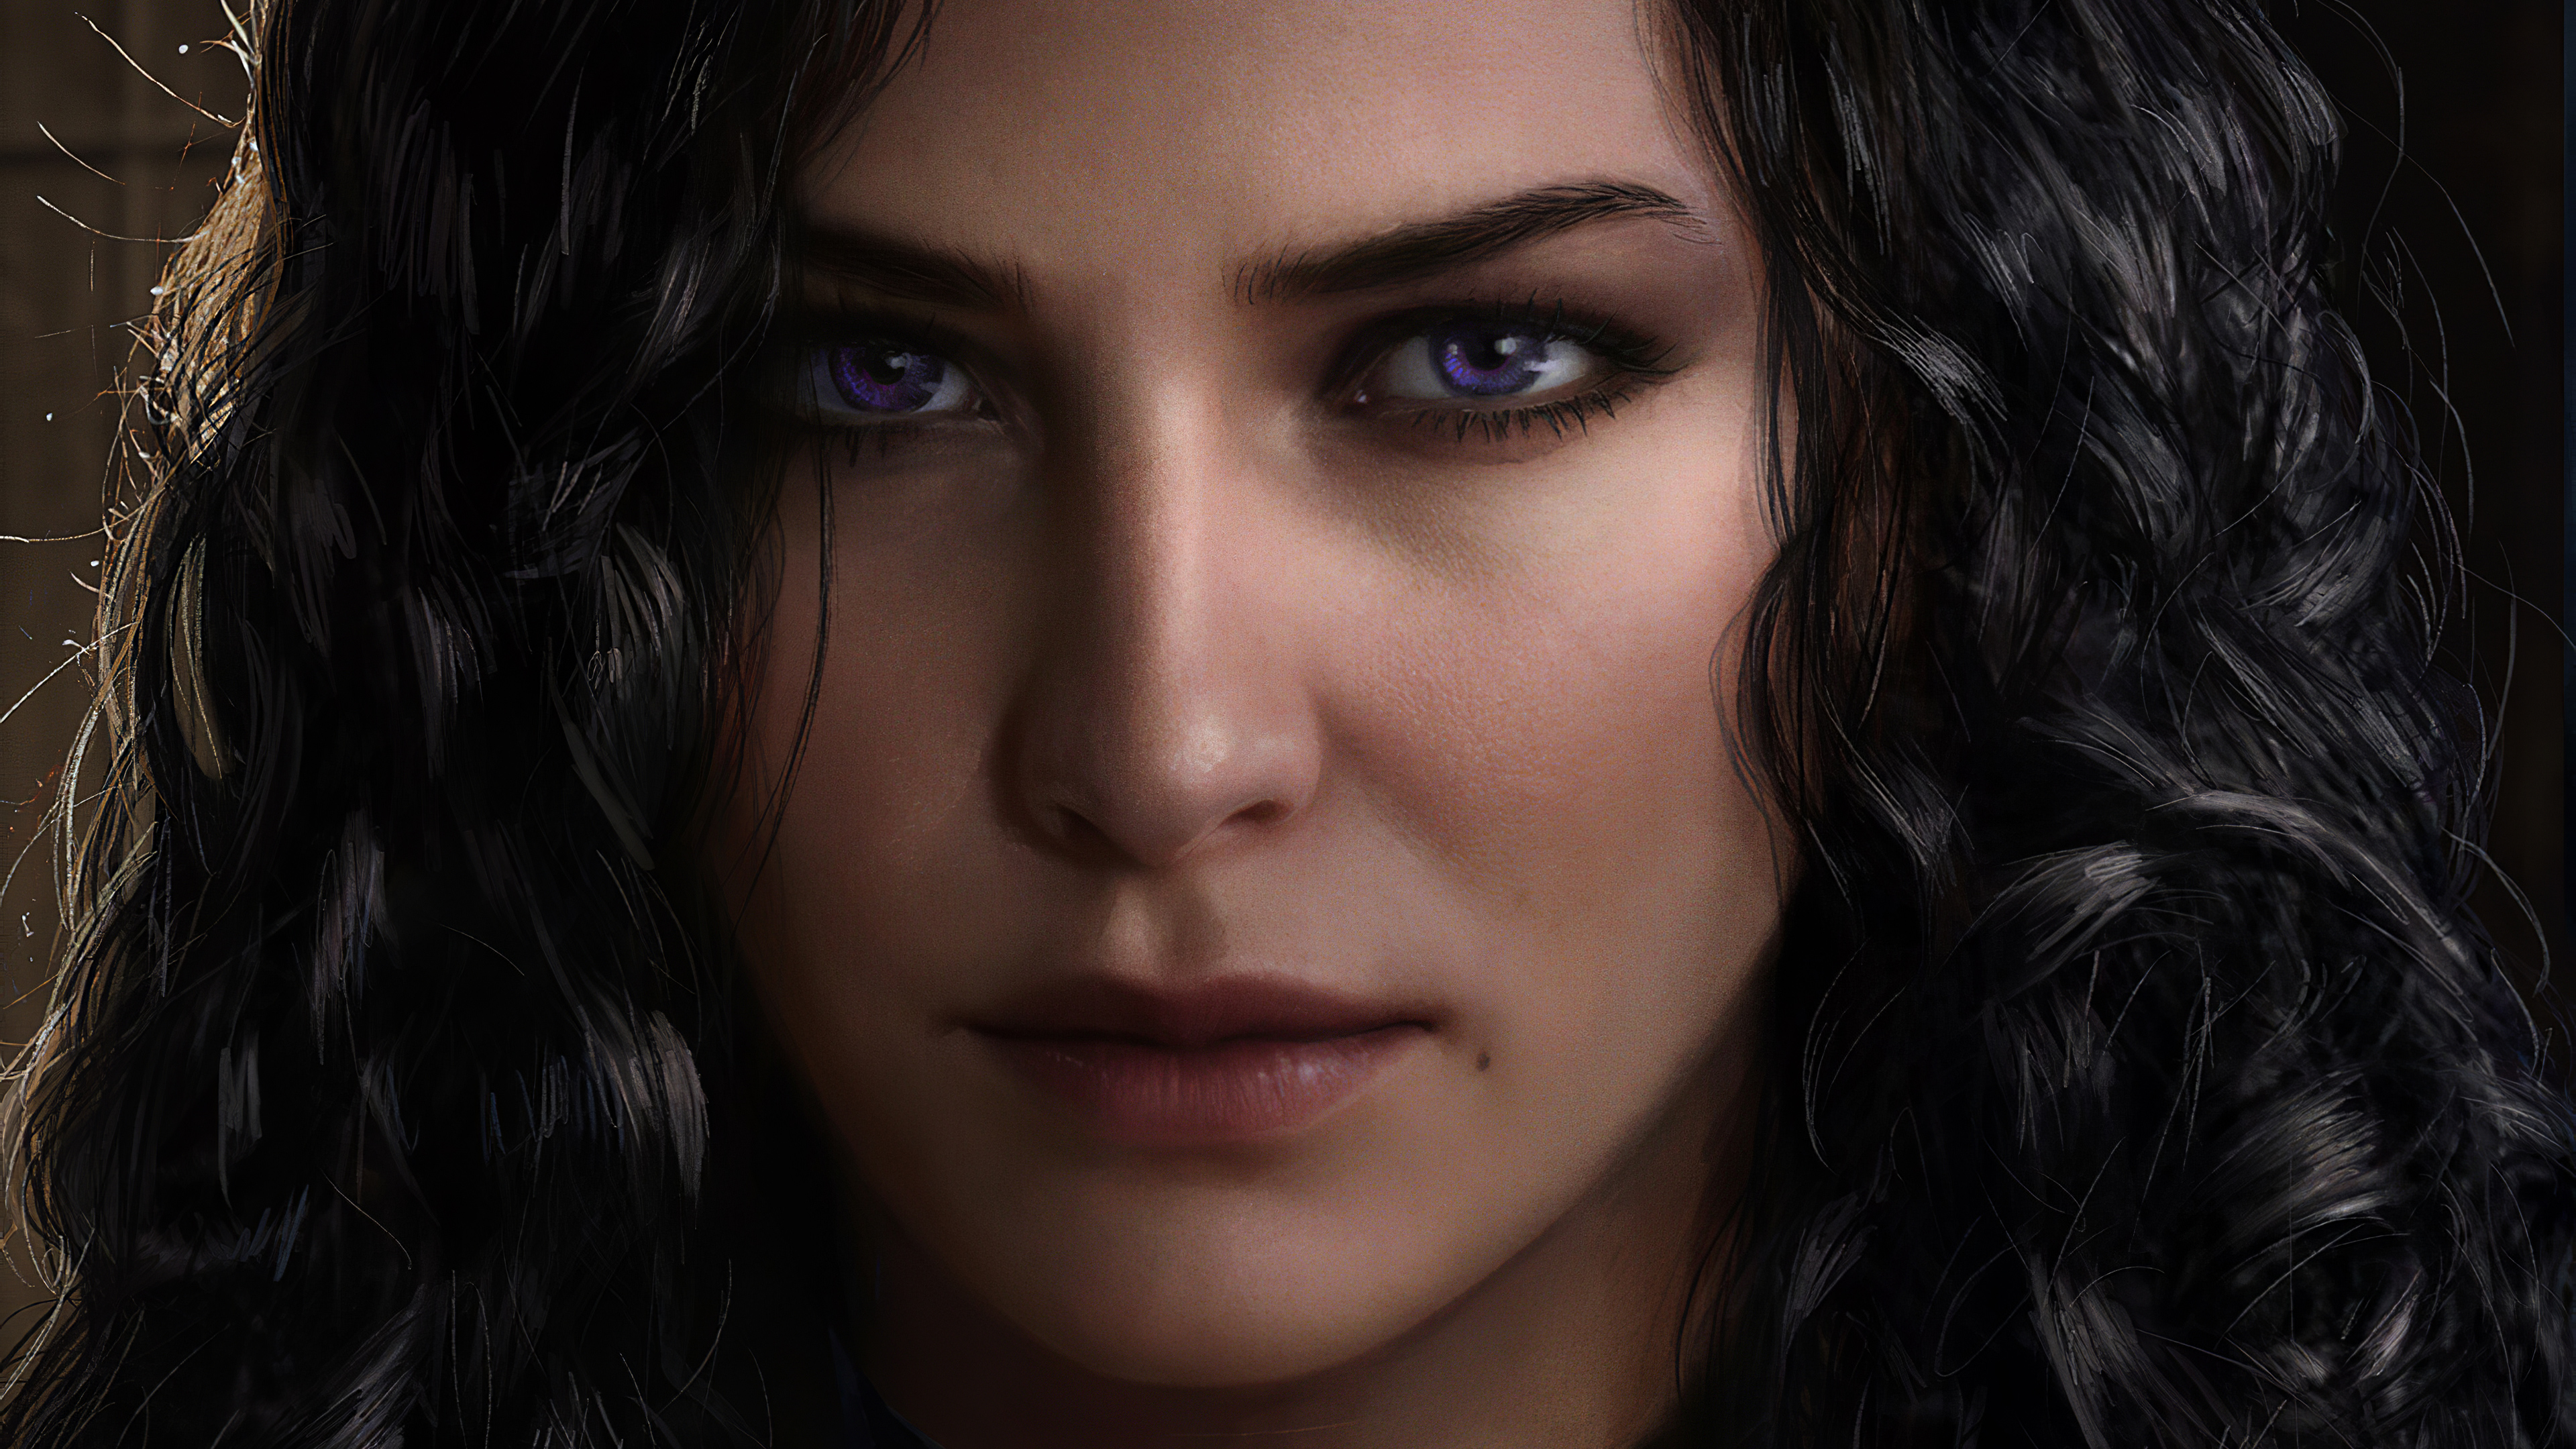 Yennefer Von Vengerberg Witcher Cosplay 4k Hd Tv Shows 4k Wallpapers Images Backgrounds Photos And Pictures